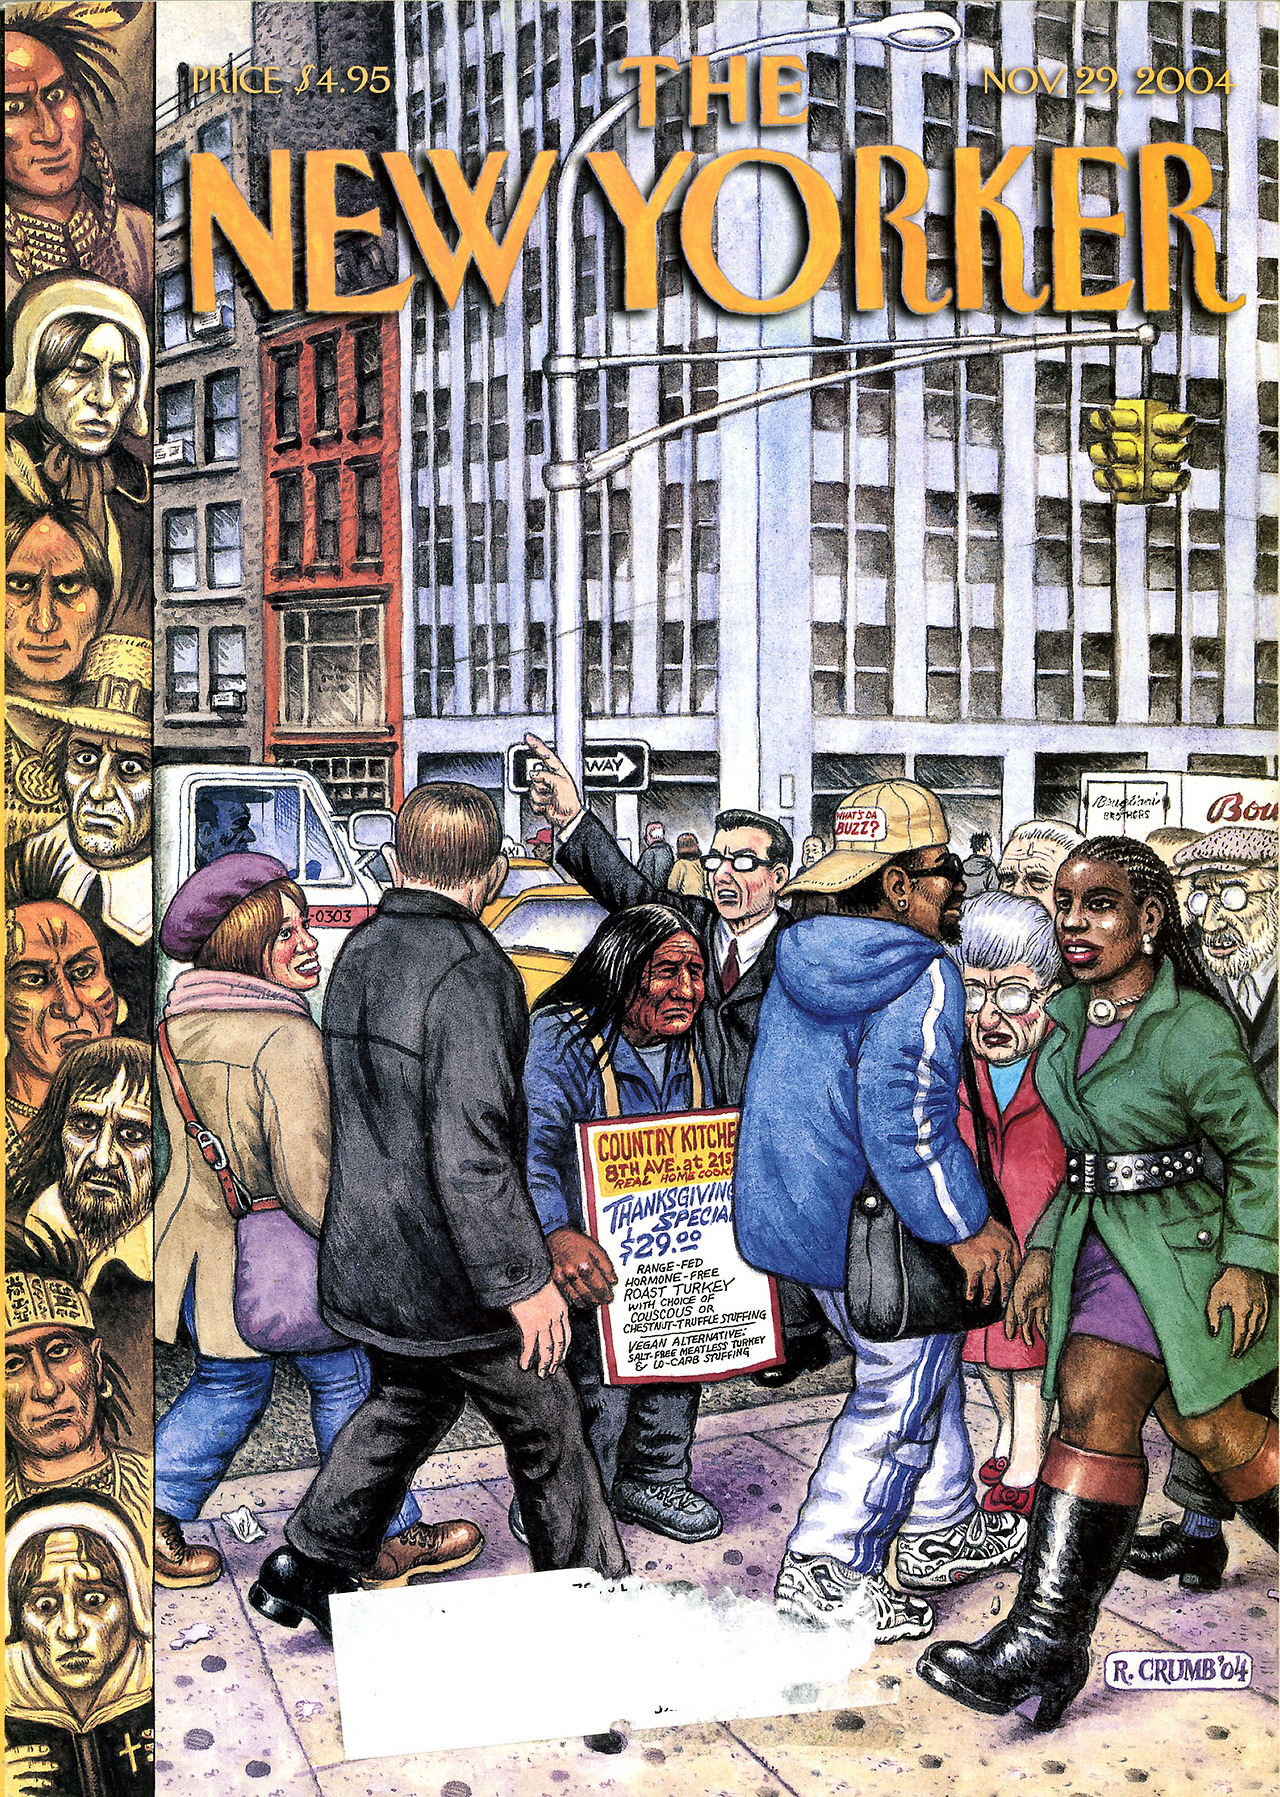 fantagraphics :      thebristolboard :     Classic  New Yorker  cover by Robert Crumb, November 29, 2004.     Happy Thanksgiving,  Crumb  style.